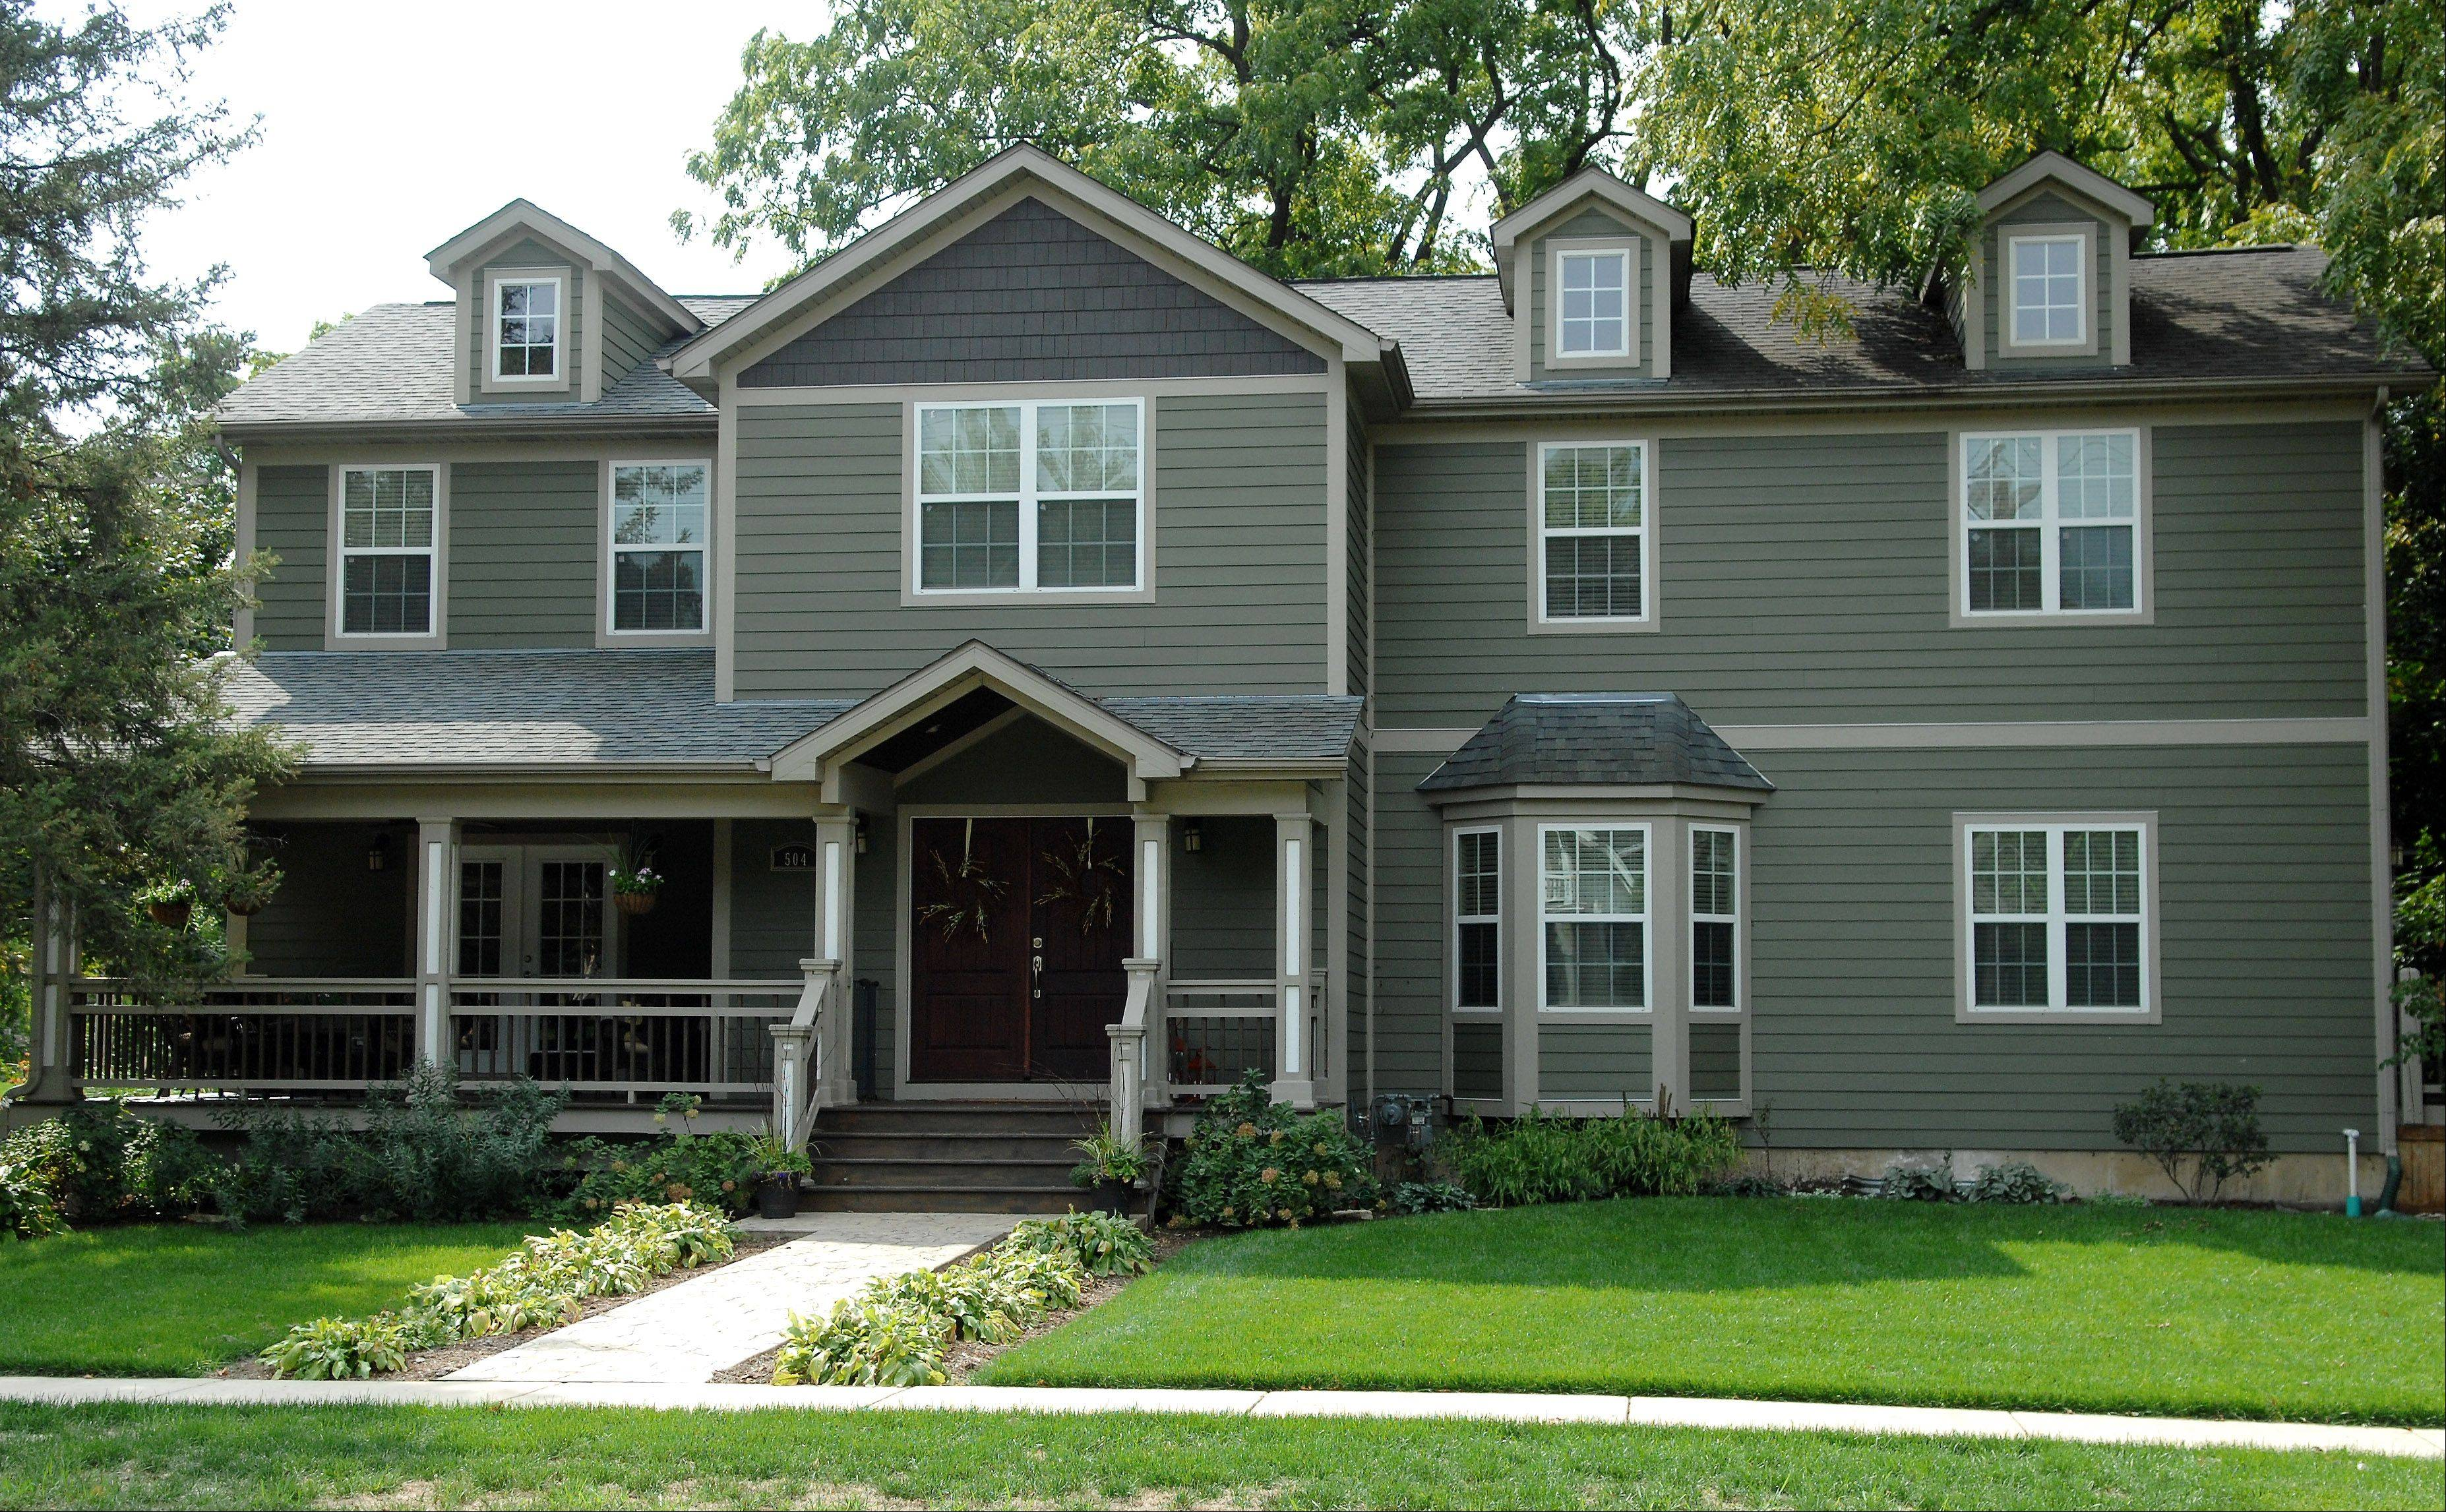 The home at 504 Main St., Batavia, is new construction, built in the Craftsman style.